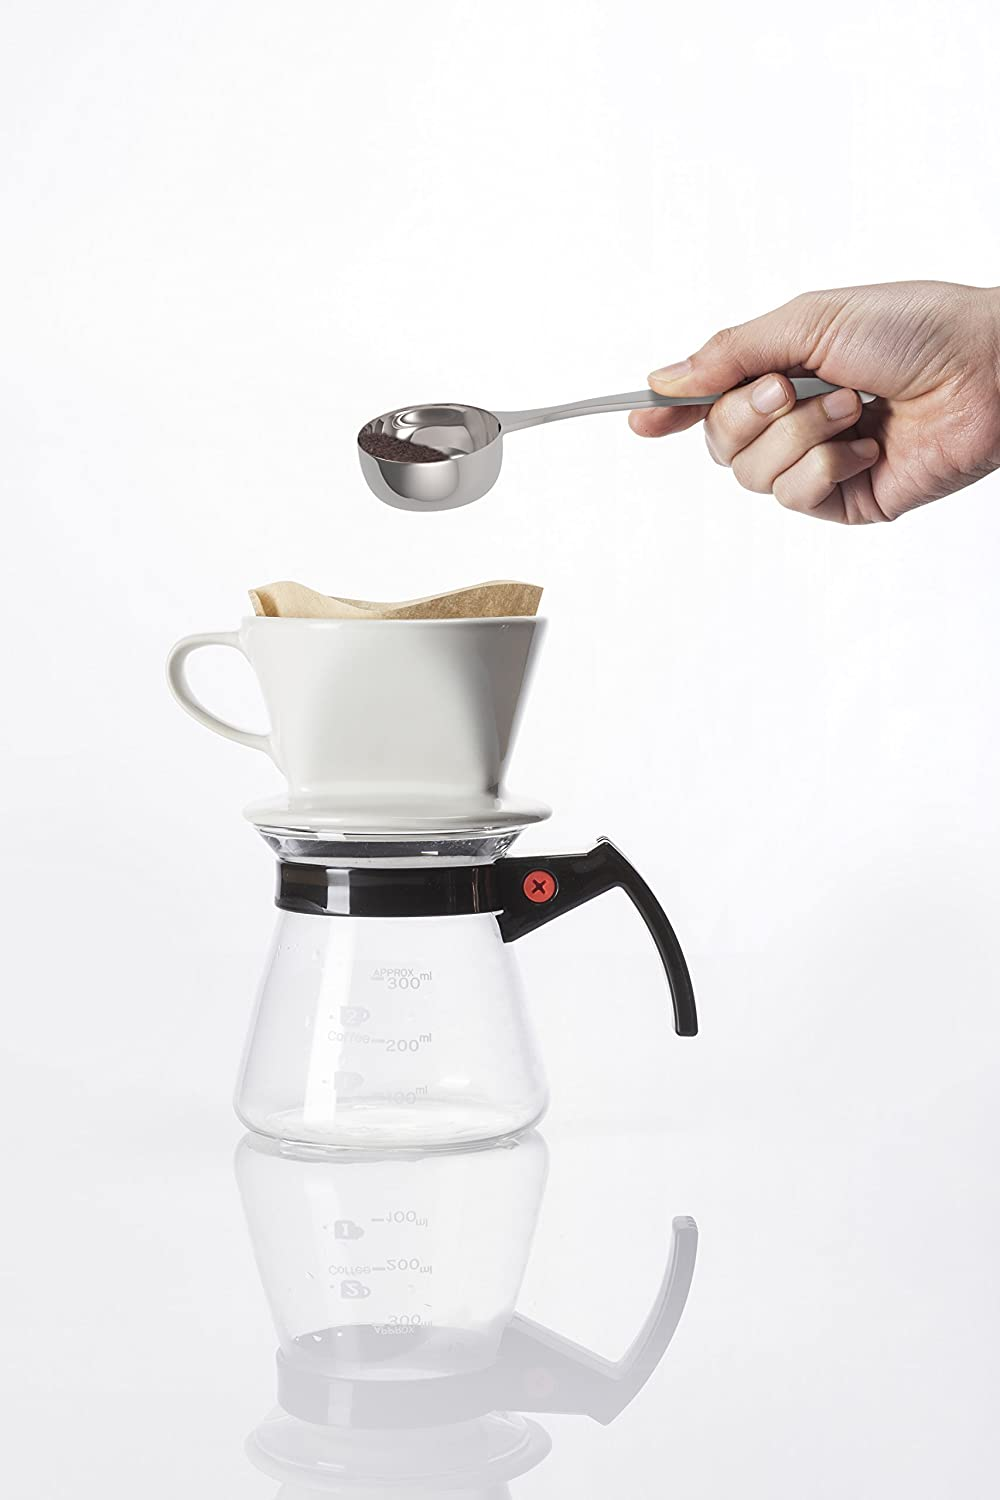 Zeppoli Coffee Scoop - 1.5 Tablespoon Exact - Stainless Steel Measuring Spoon - Great for Measuring Coffee, Protein Powder, Spices and More - Perfect for Coffee Enthusiasts Equinox International SYNCHKG068601